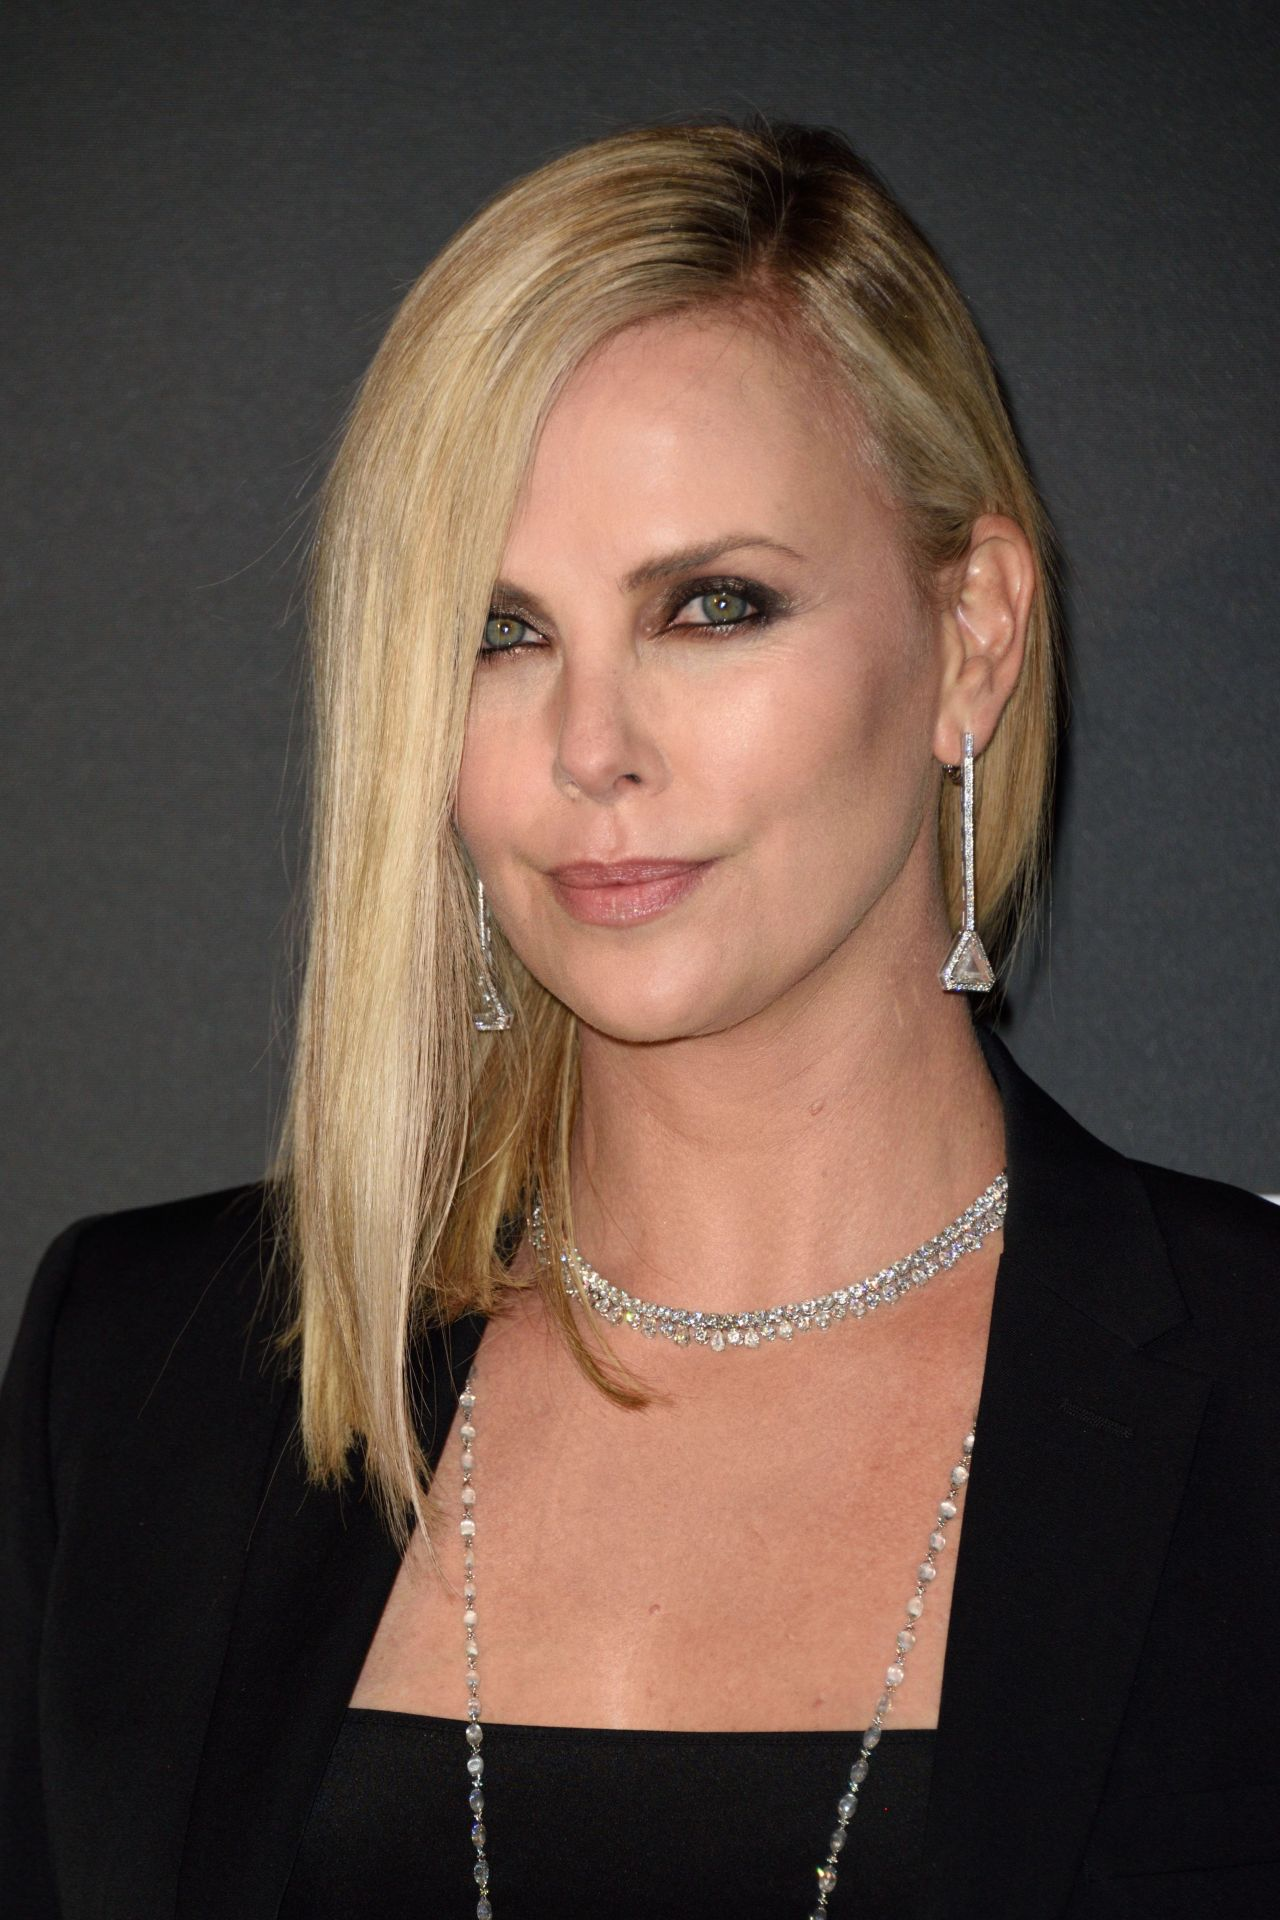 Charlize Theron On Red Carpet The Fate Of The Furious